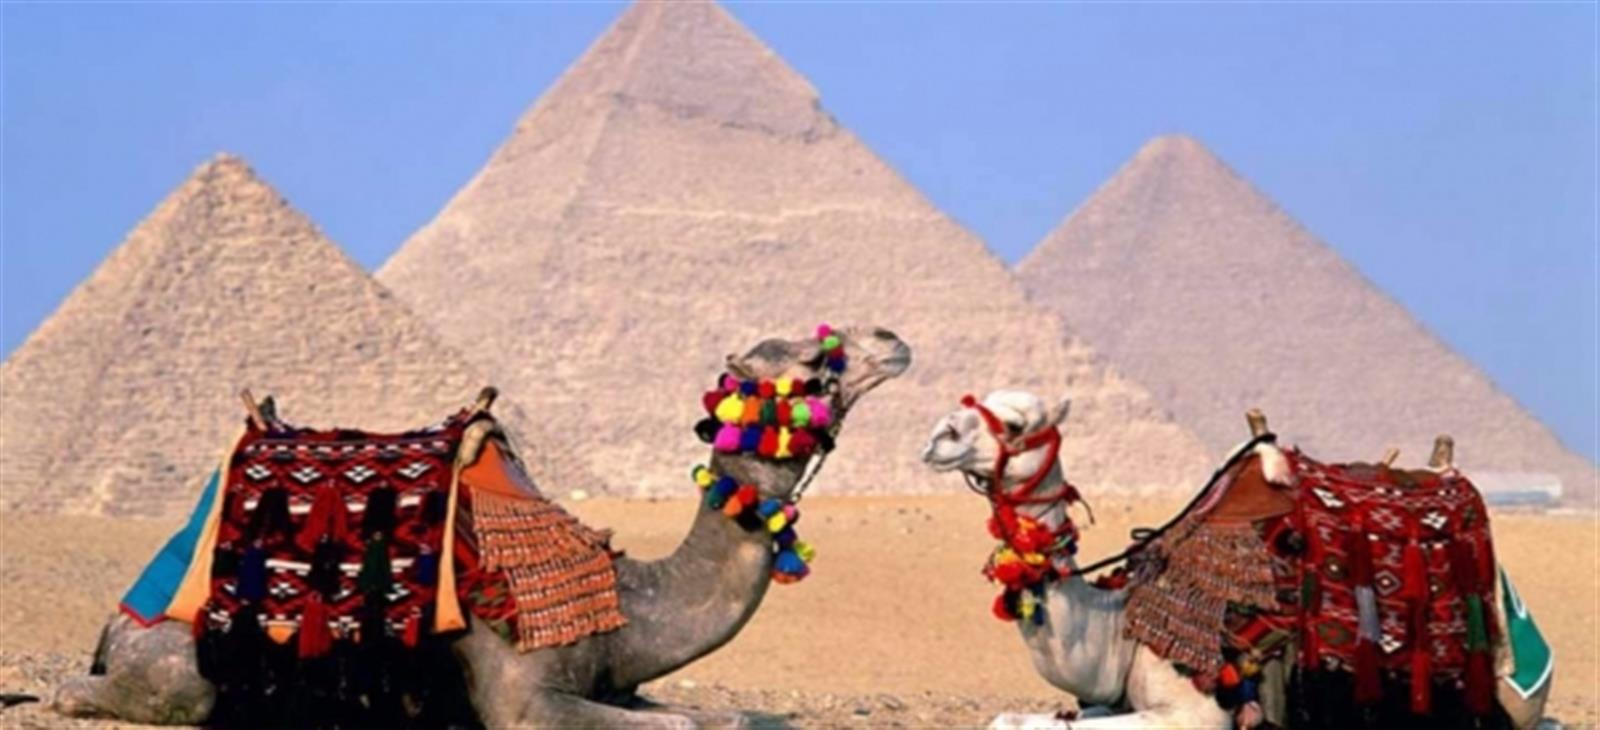 tour to cairo from sharm el sheikh by plane